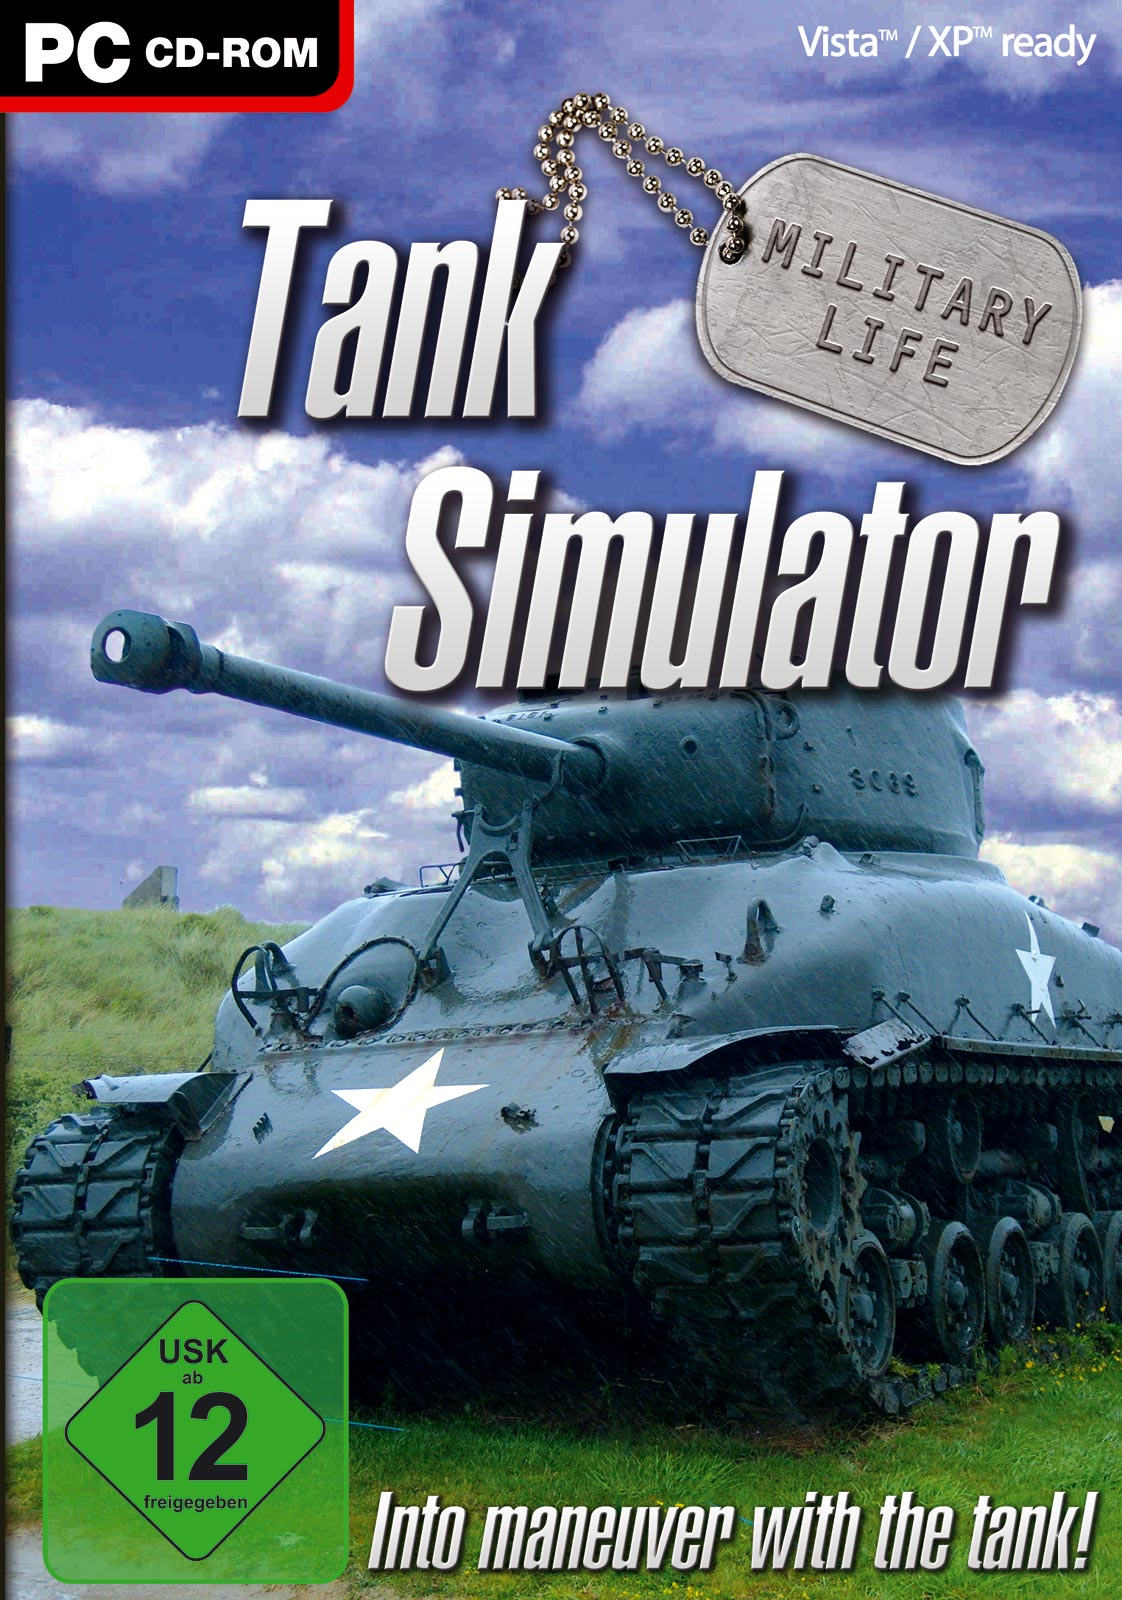 realistic dating simulation games Browse the newest, top selling and discounted simulation products on steam.